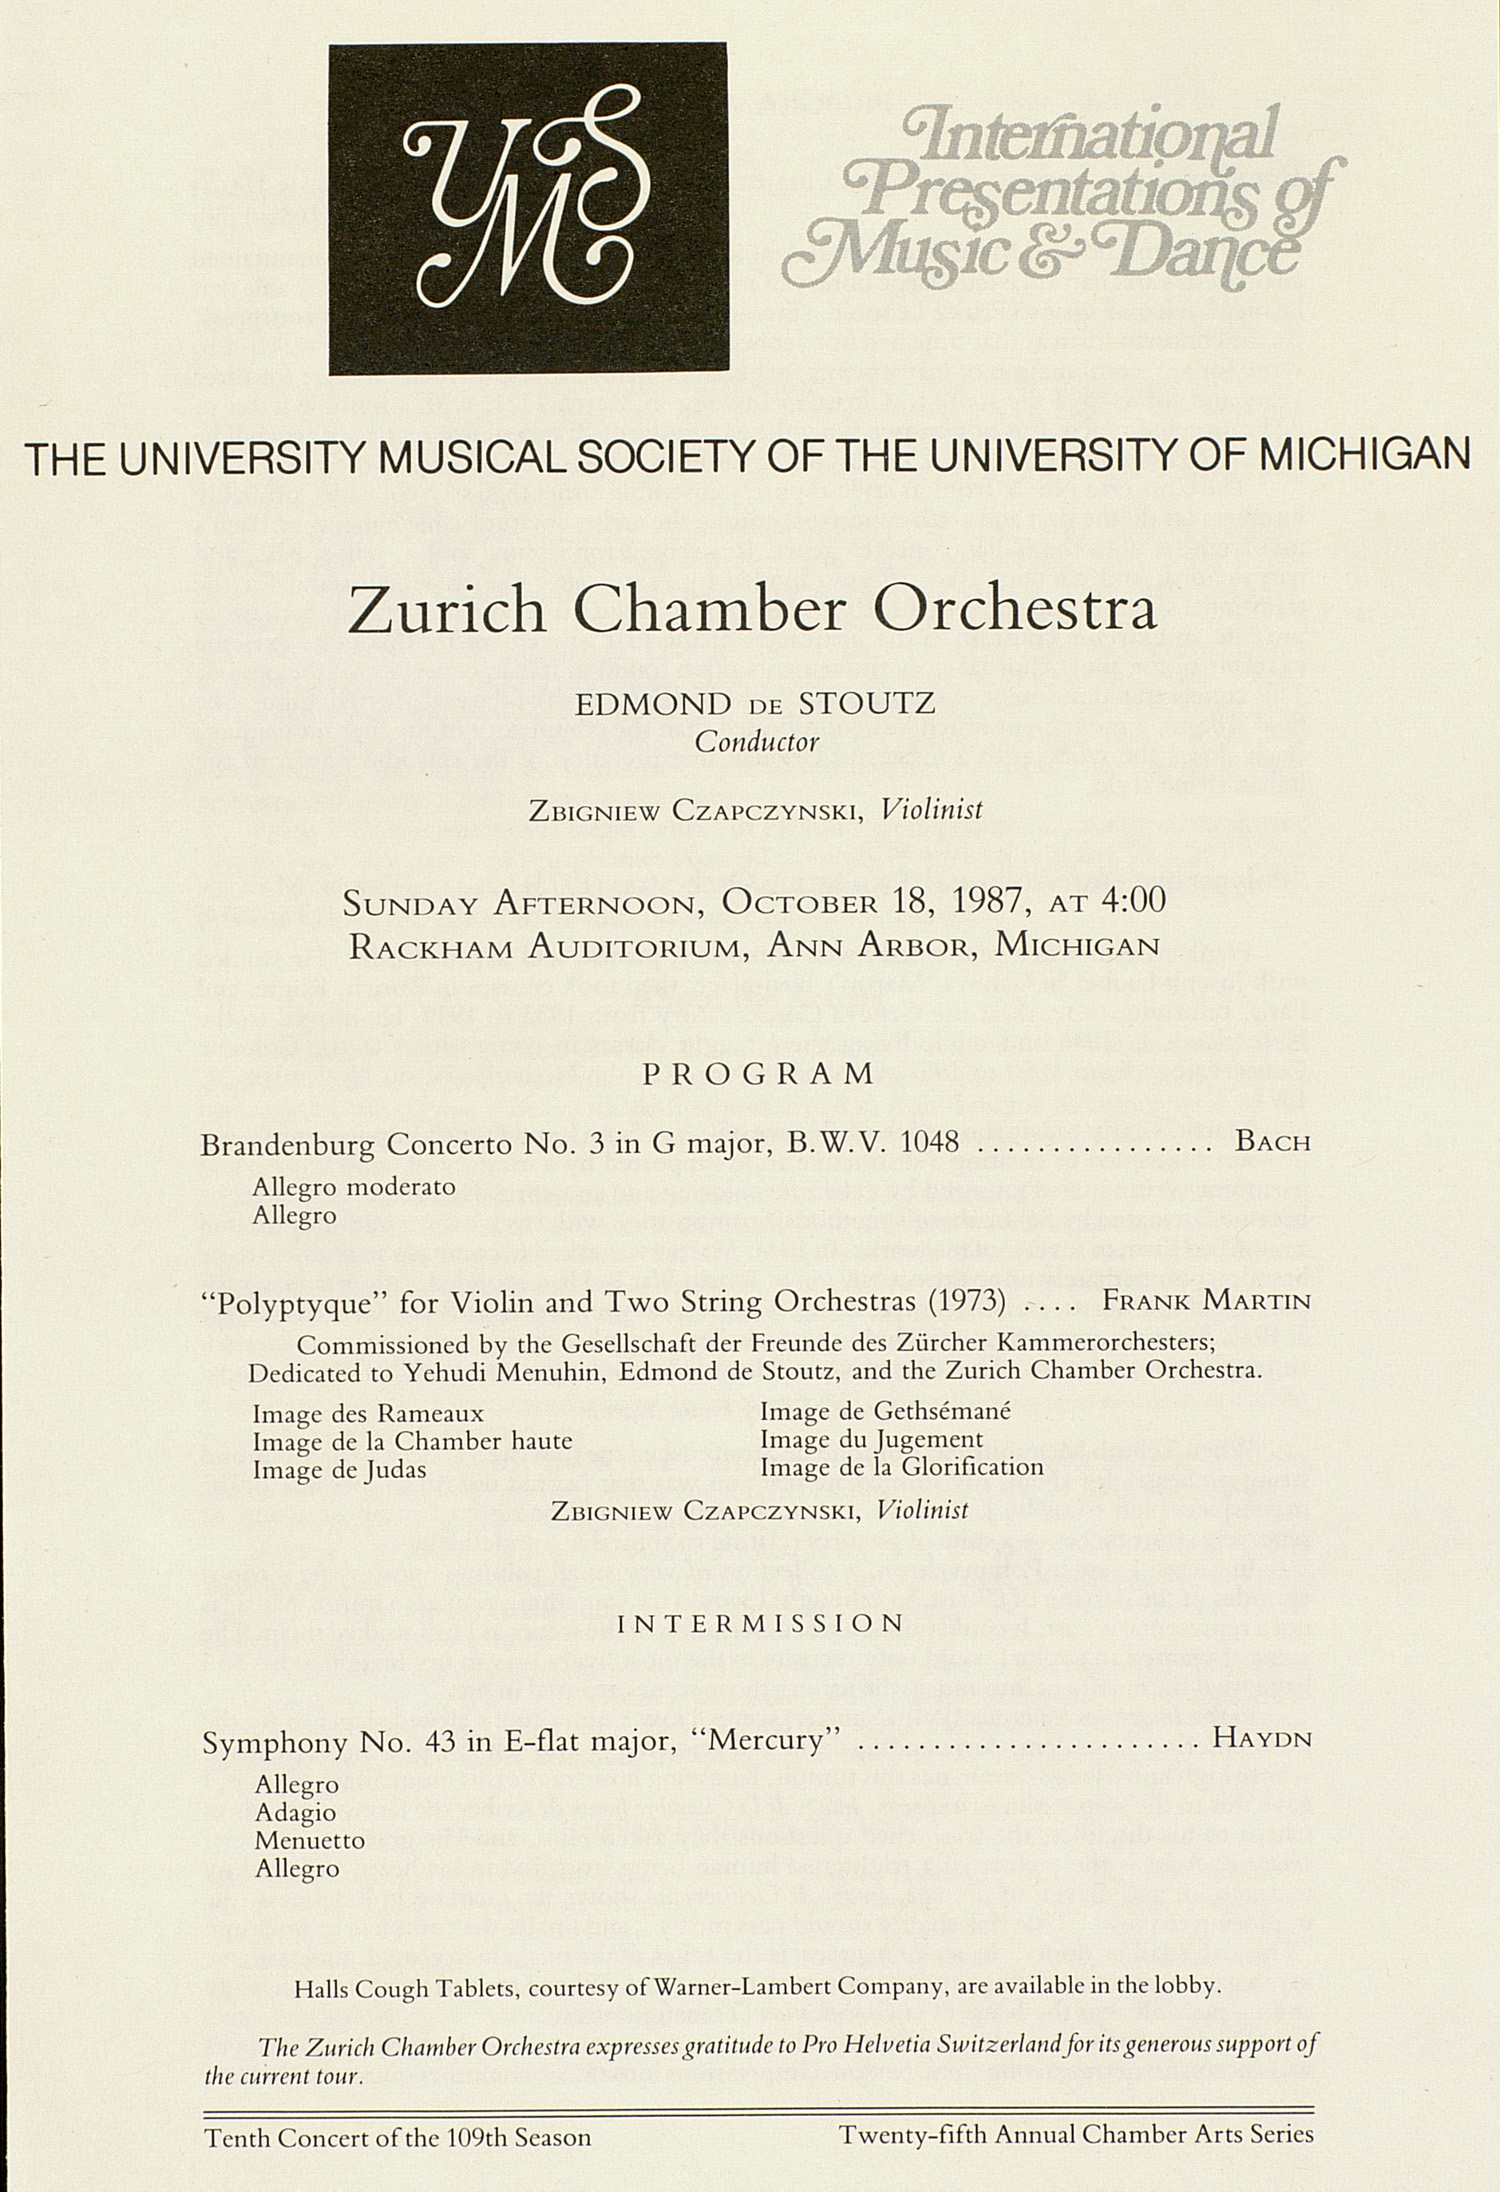 UMS Concert Program, October 18, 1987: International Presentations Of Music & Dance -- Zurich Chamber Orchestra image